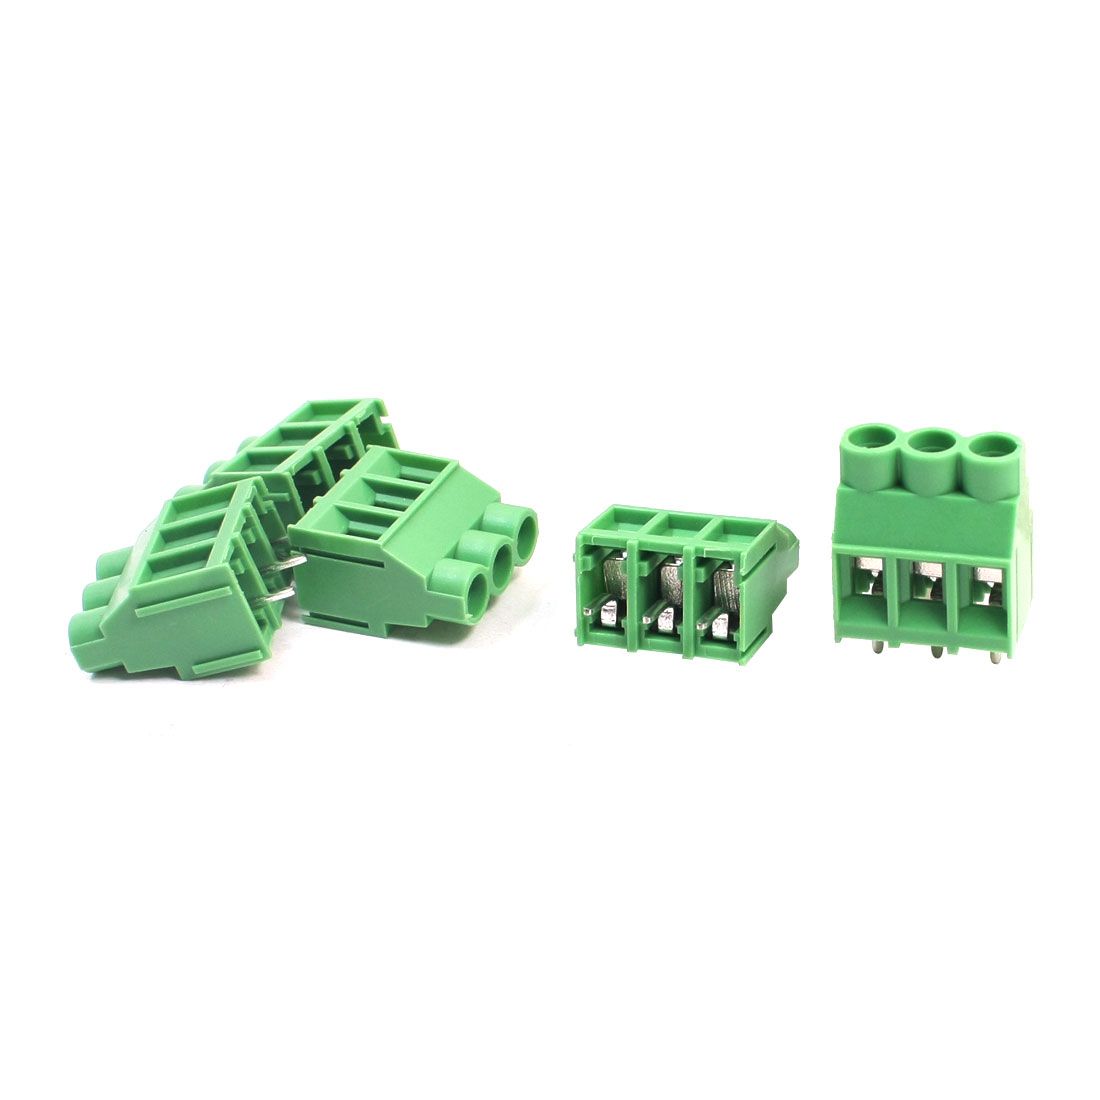 5 Pcs KF635 300V 6.35mm Spacing 4-Pole Plug in Through Hole Mounting PCB Screw Terminal Barrier Block Connector